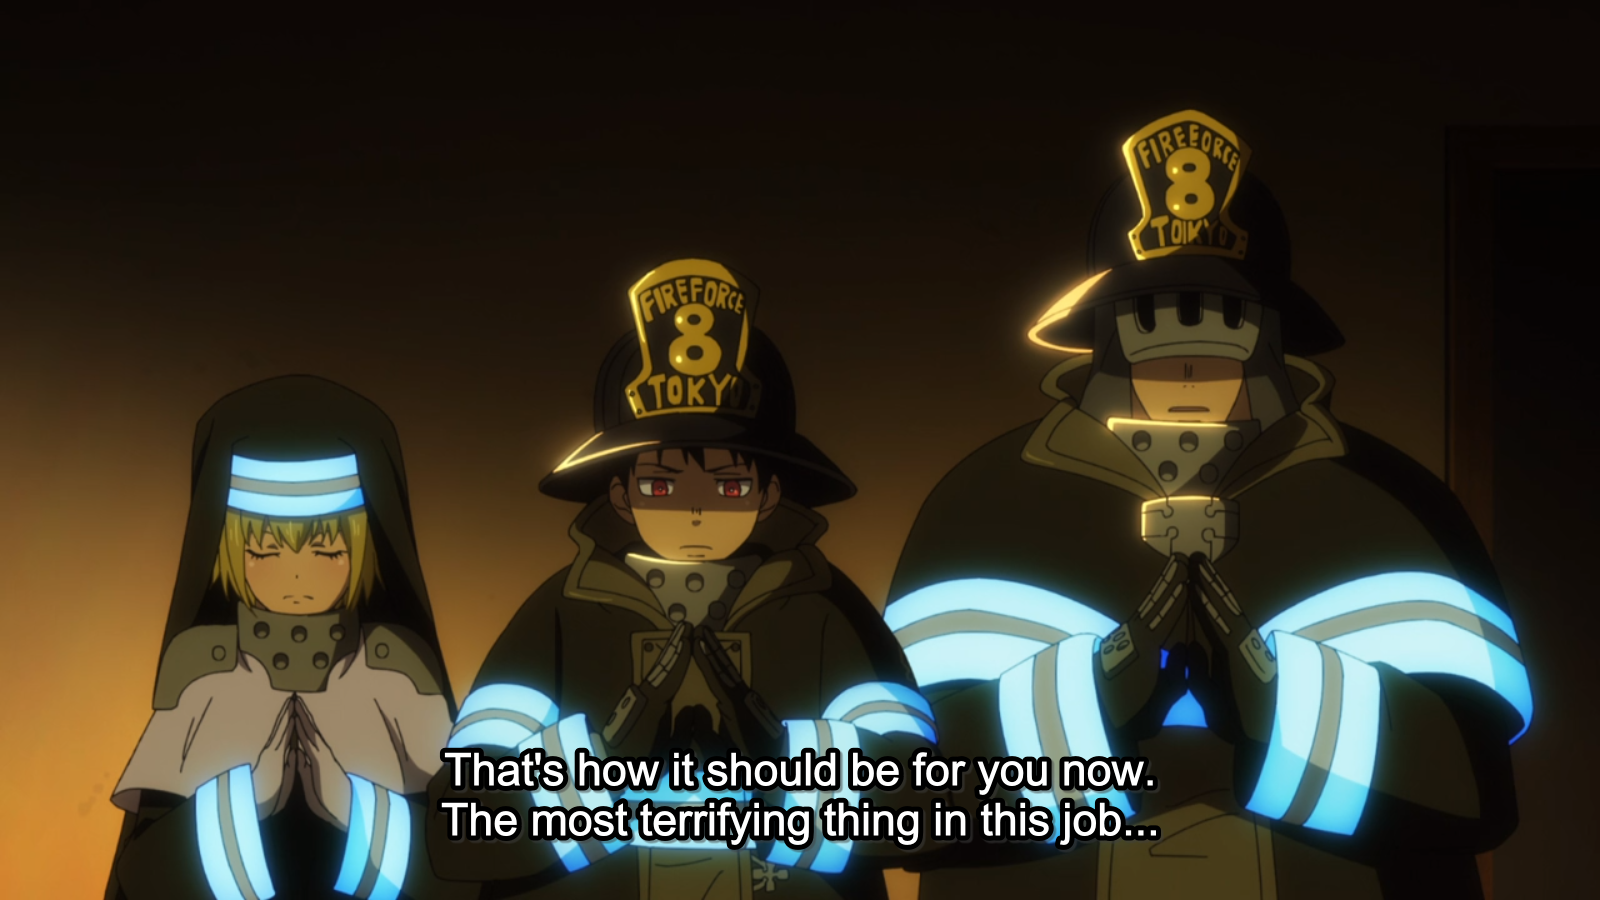 https://drunkenanimeblog.com/wp-content/uploads/2019/07/Fire-Force-ep2-40.png